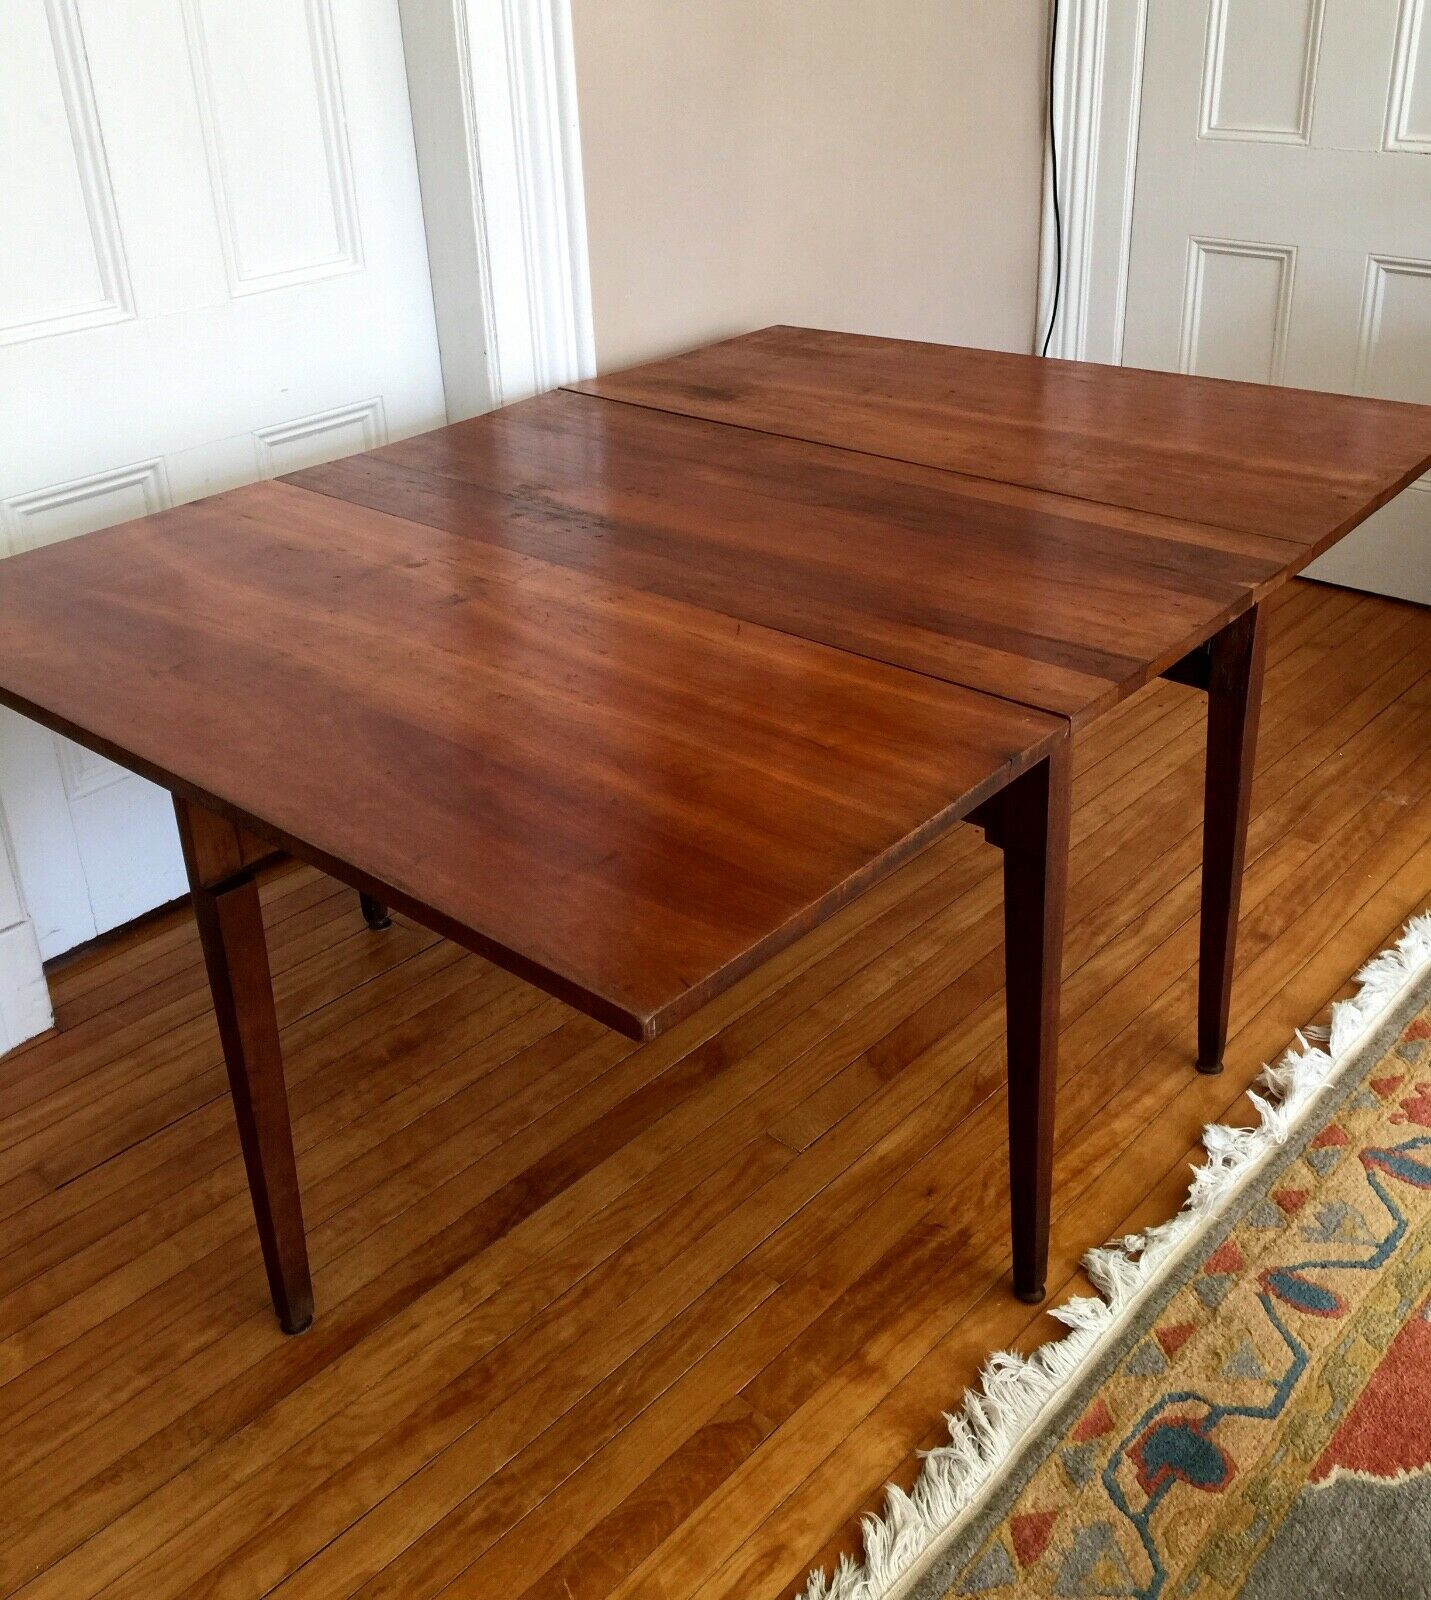 ANTIQUE Solid CHERRY DROP LEAF TABLE  - $449.99